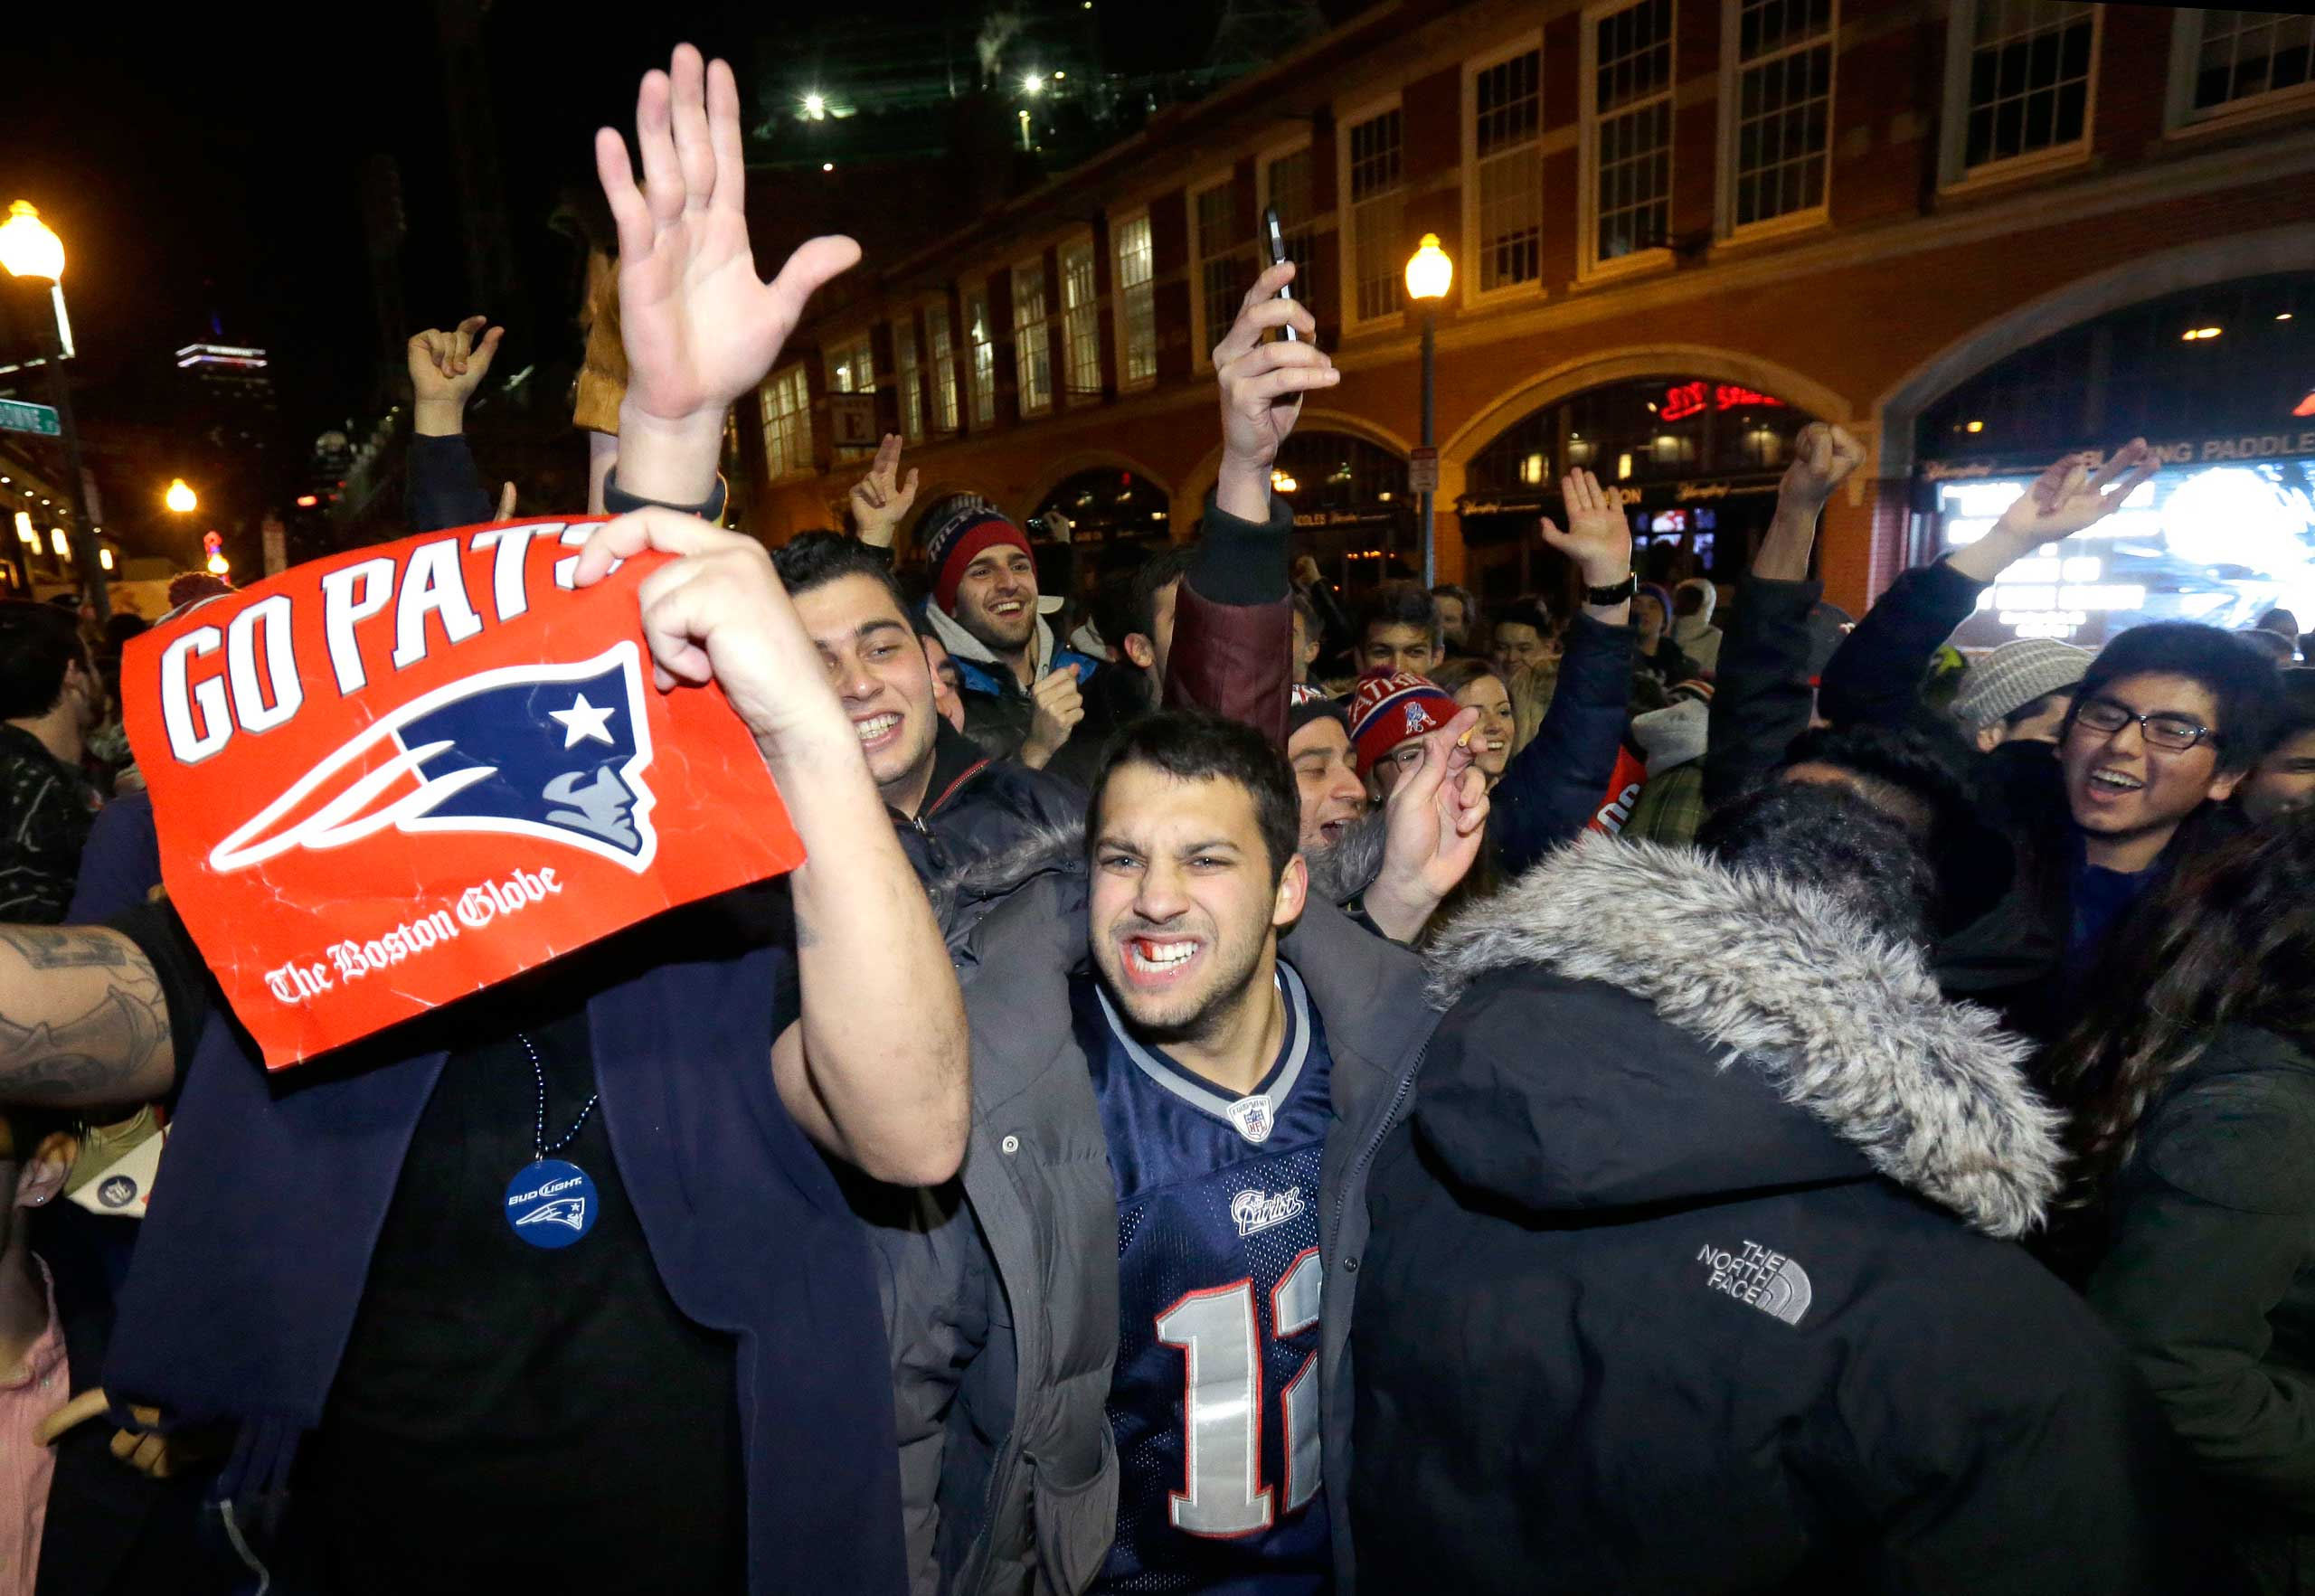 New England Patriots fans celebrate on Feb. 1, 2015 in Boston after the Patriots won the NFL Super Bowl XLIX football game against the Seattle Seahawks 28-24 in Glendale, Ariz.